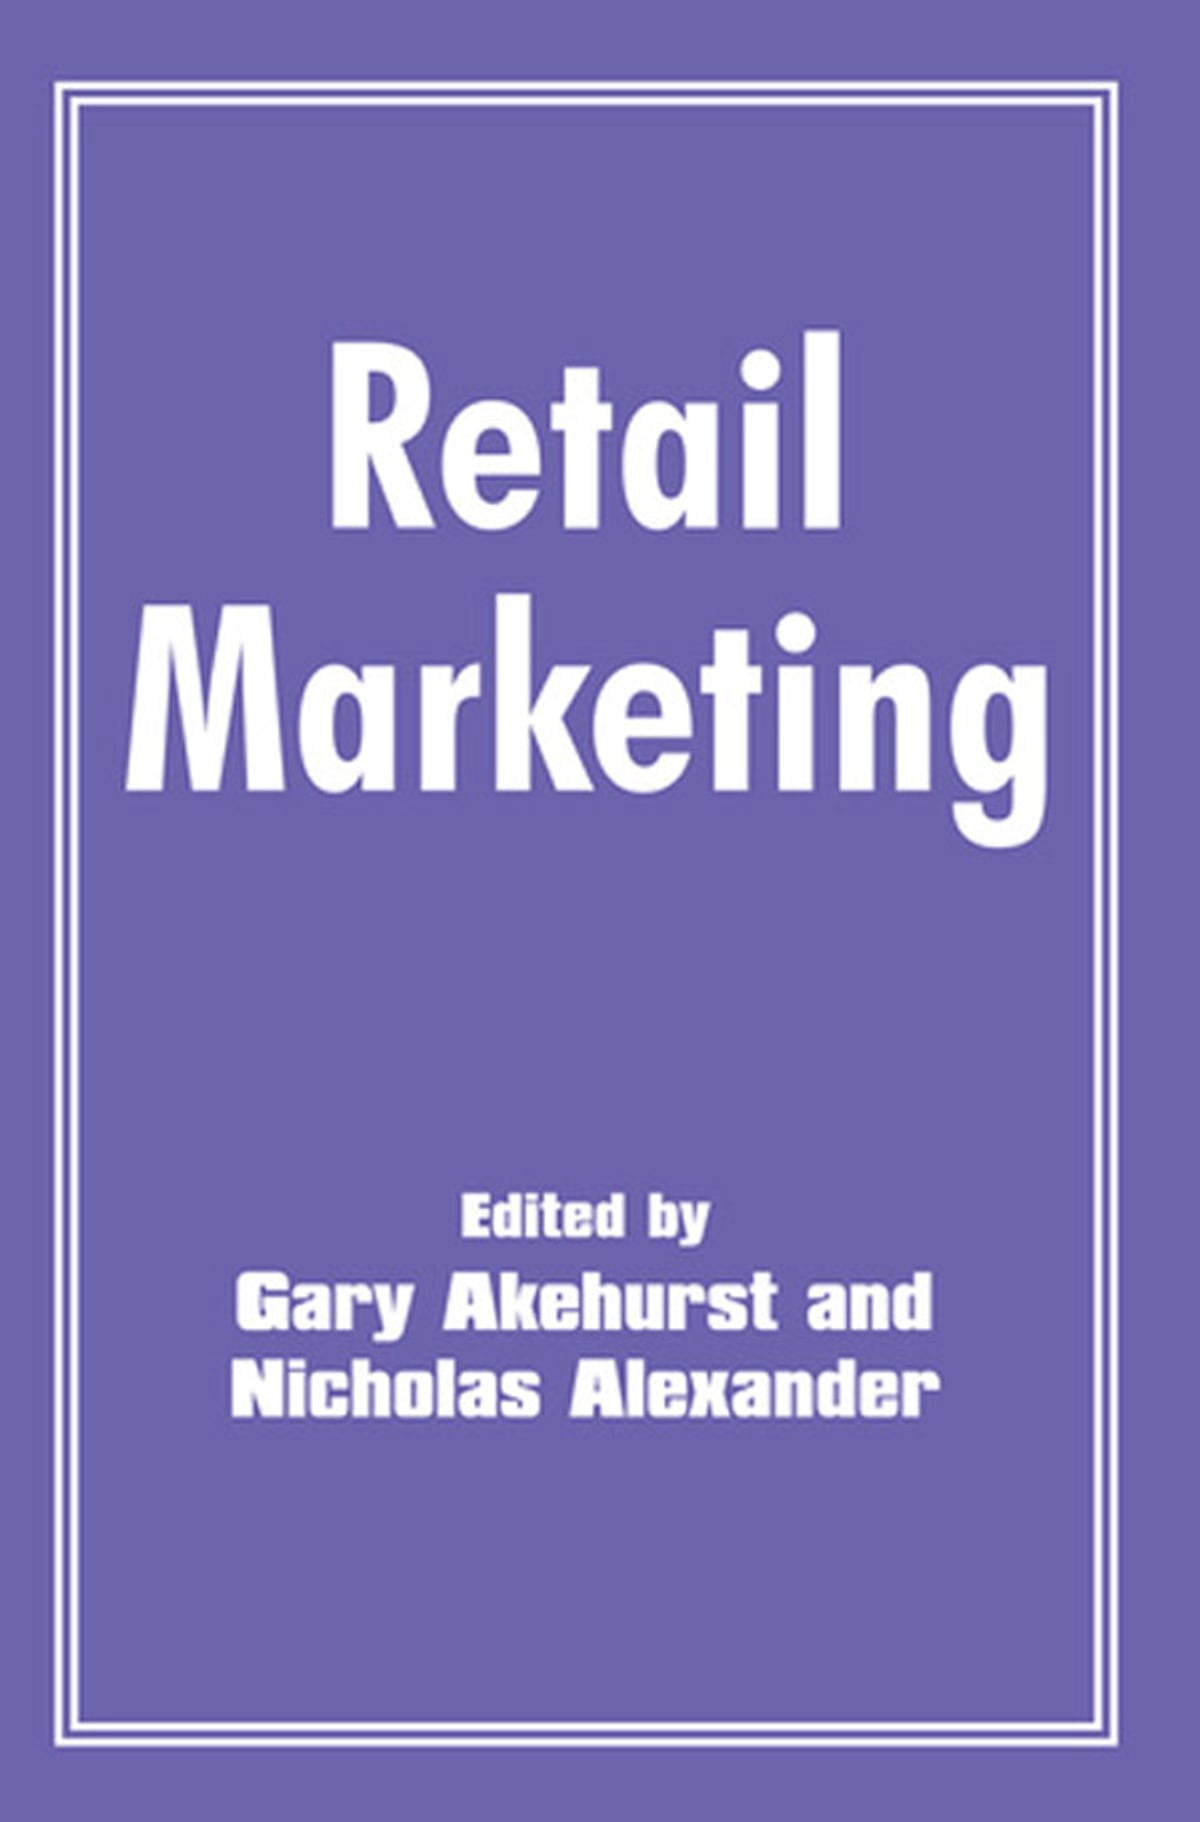 Retail Marketing Ebook